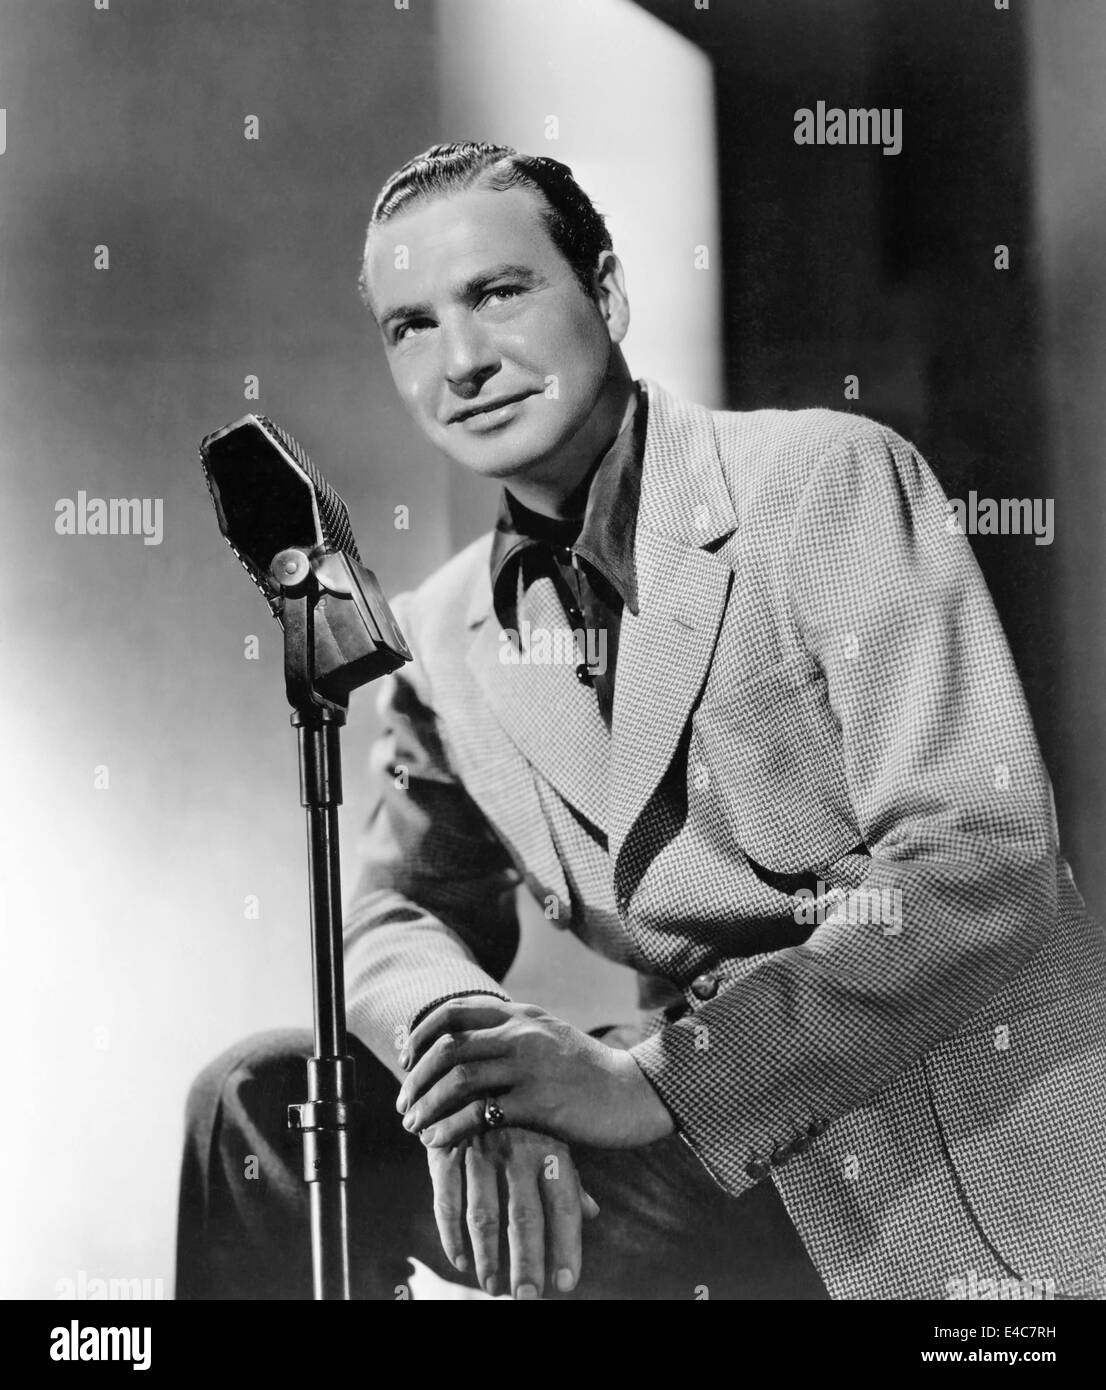 Phil Harris, American Singer, Songwriter, Jazz Musician, Actor, and Comedian, Portrait, circa 1940's - Stock Image